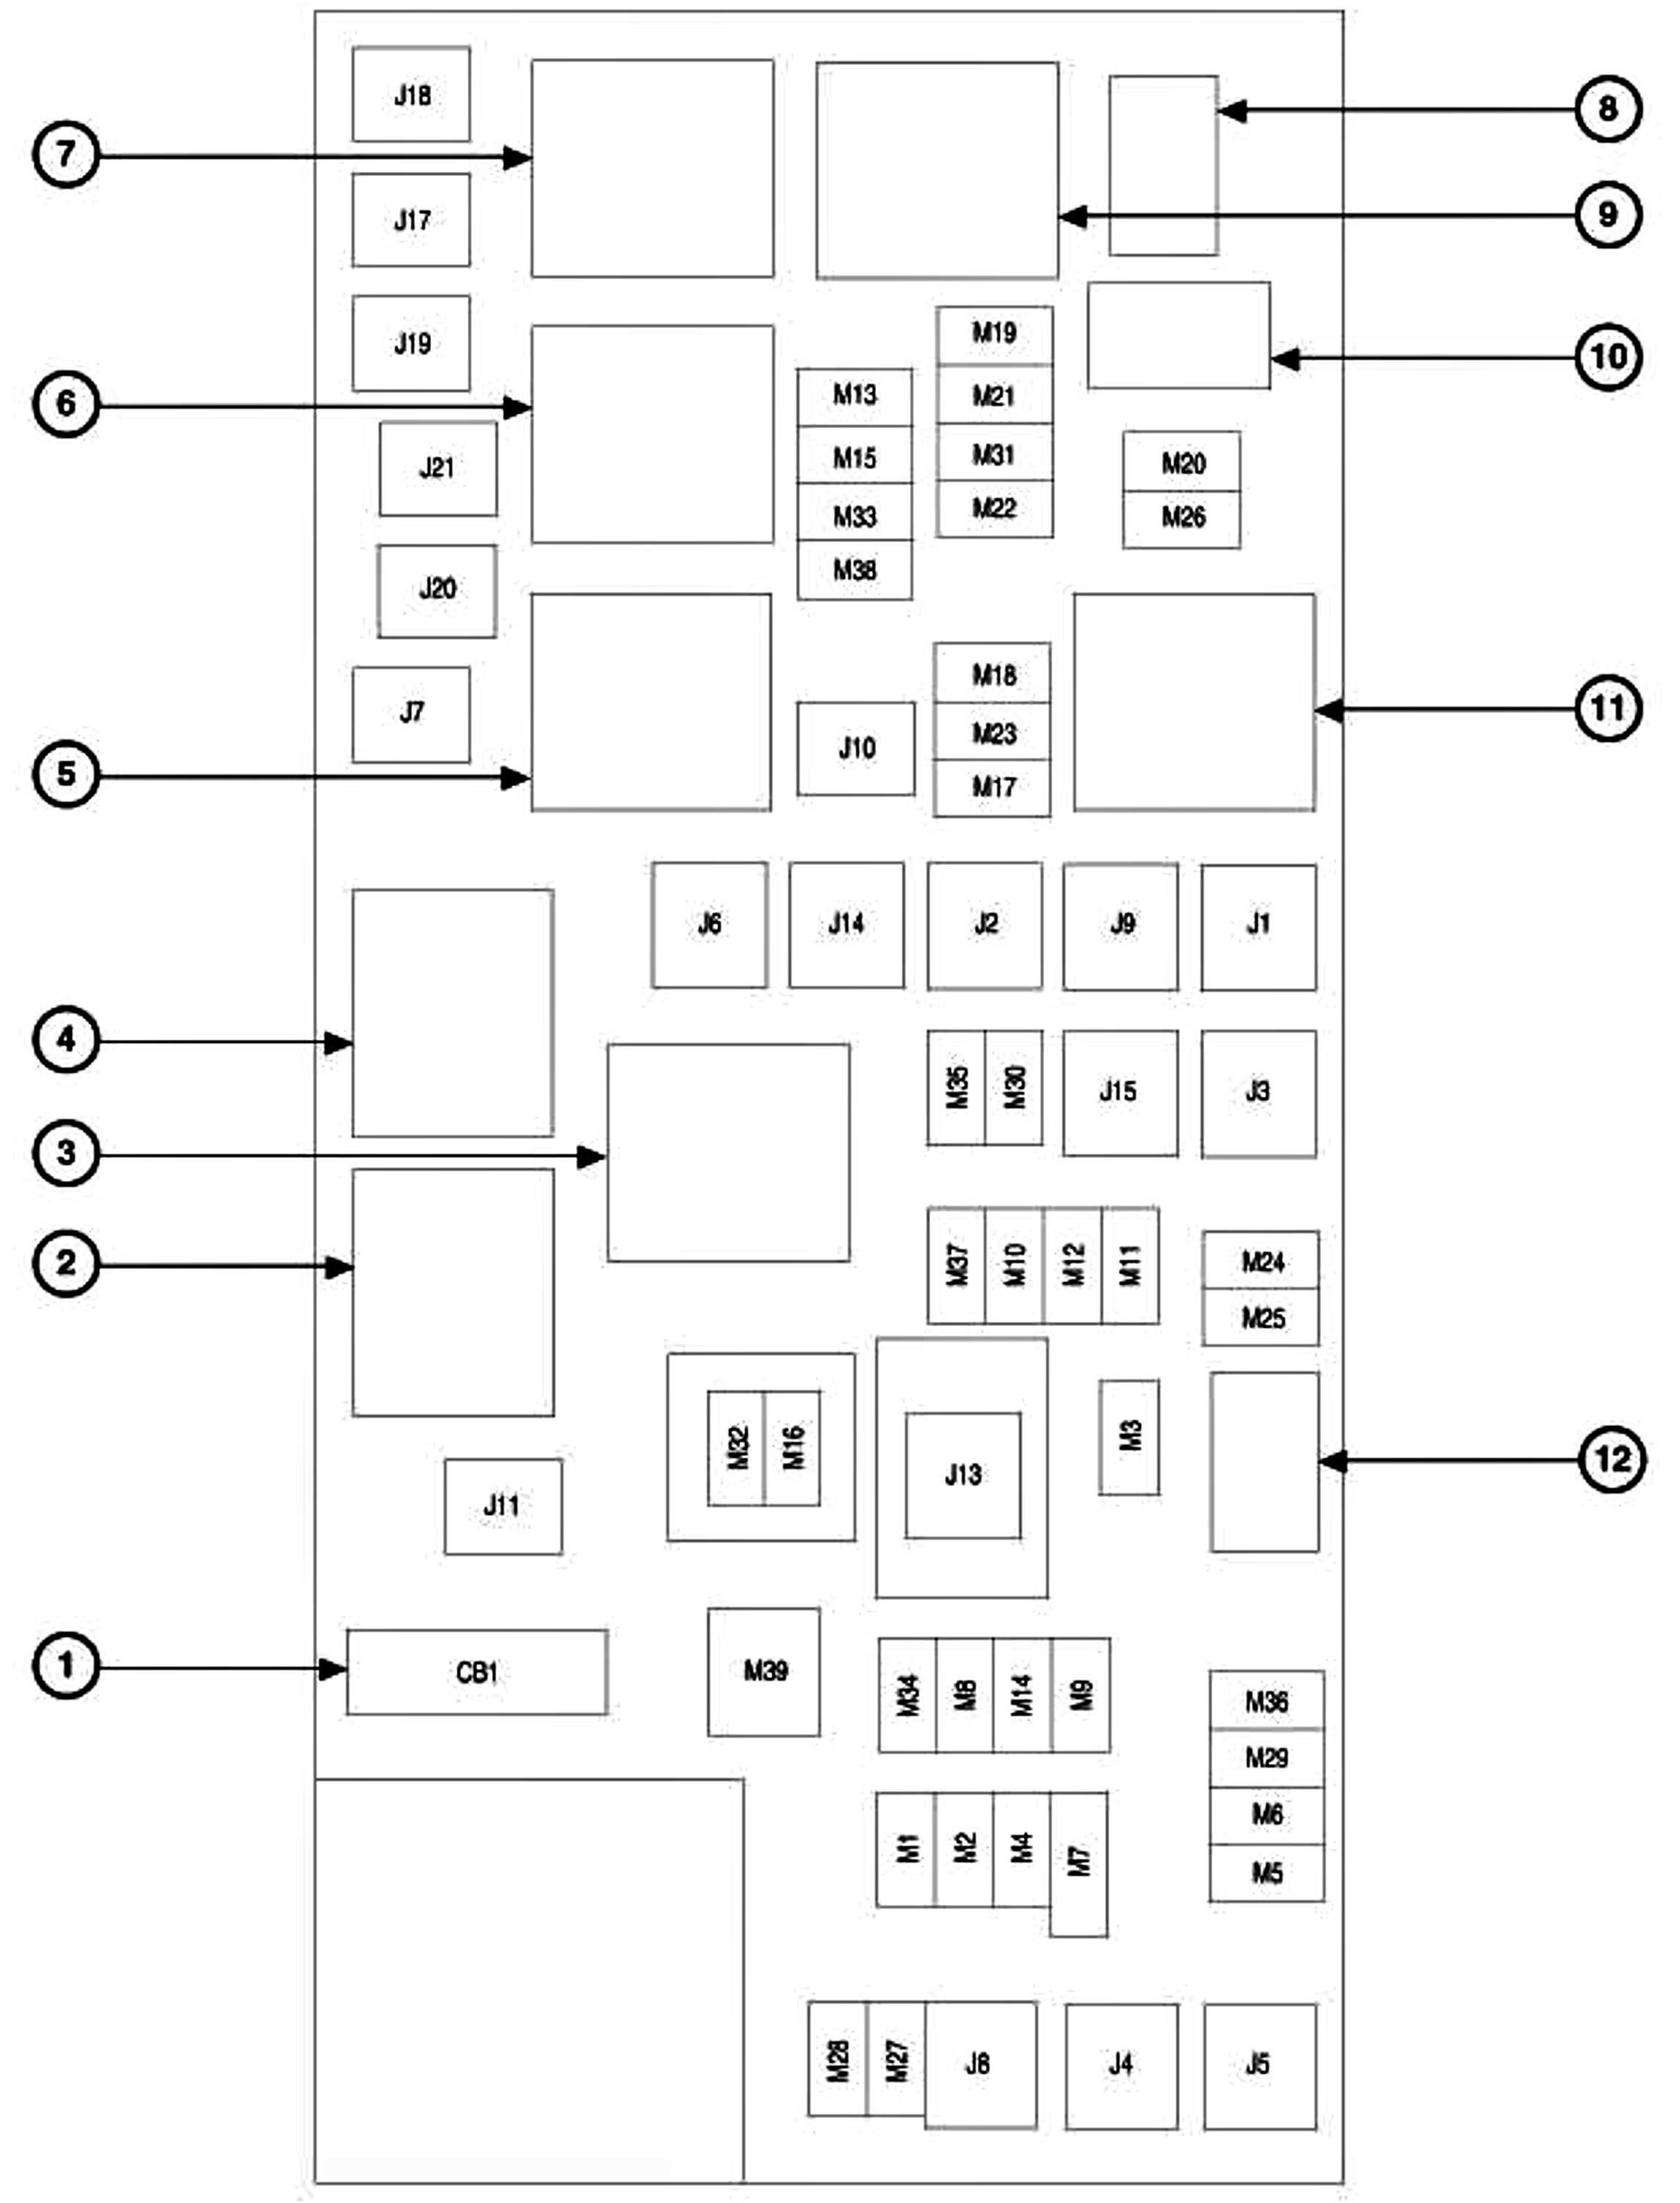 2008 jeep commander fuse box schema diagram database jeep commander fuse box diagram jeep commander fuse box location [ 2288 x 3000 Pixel ]